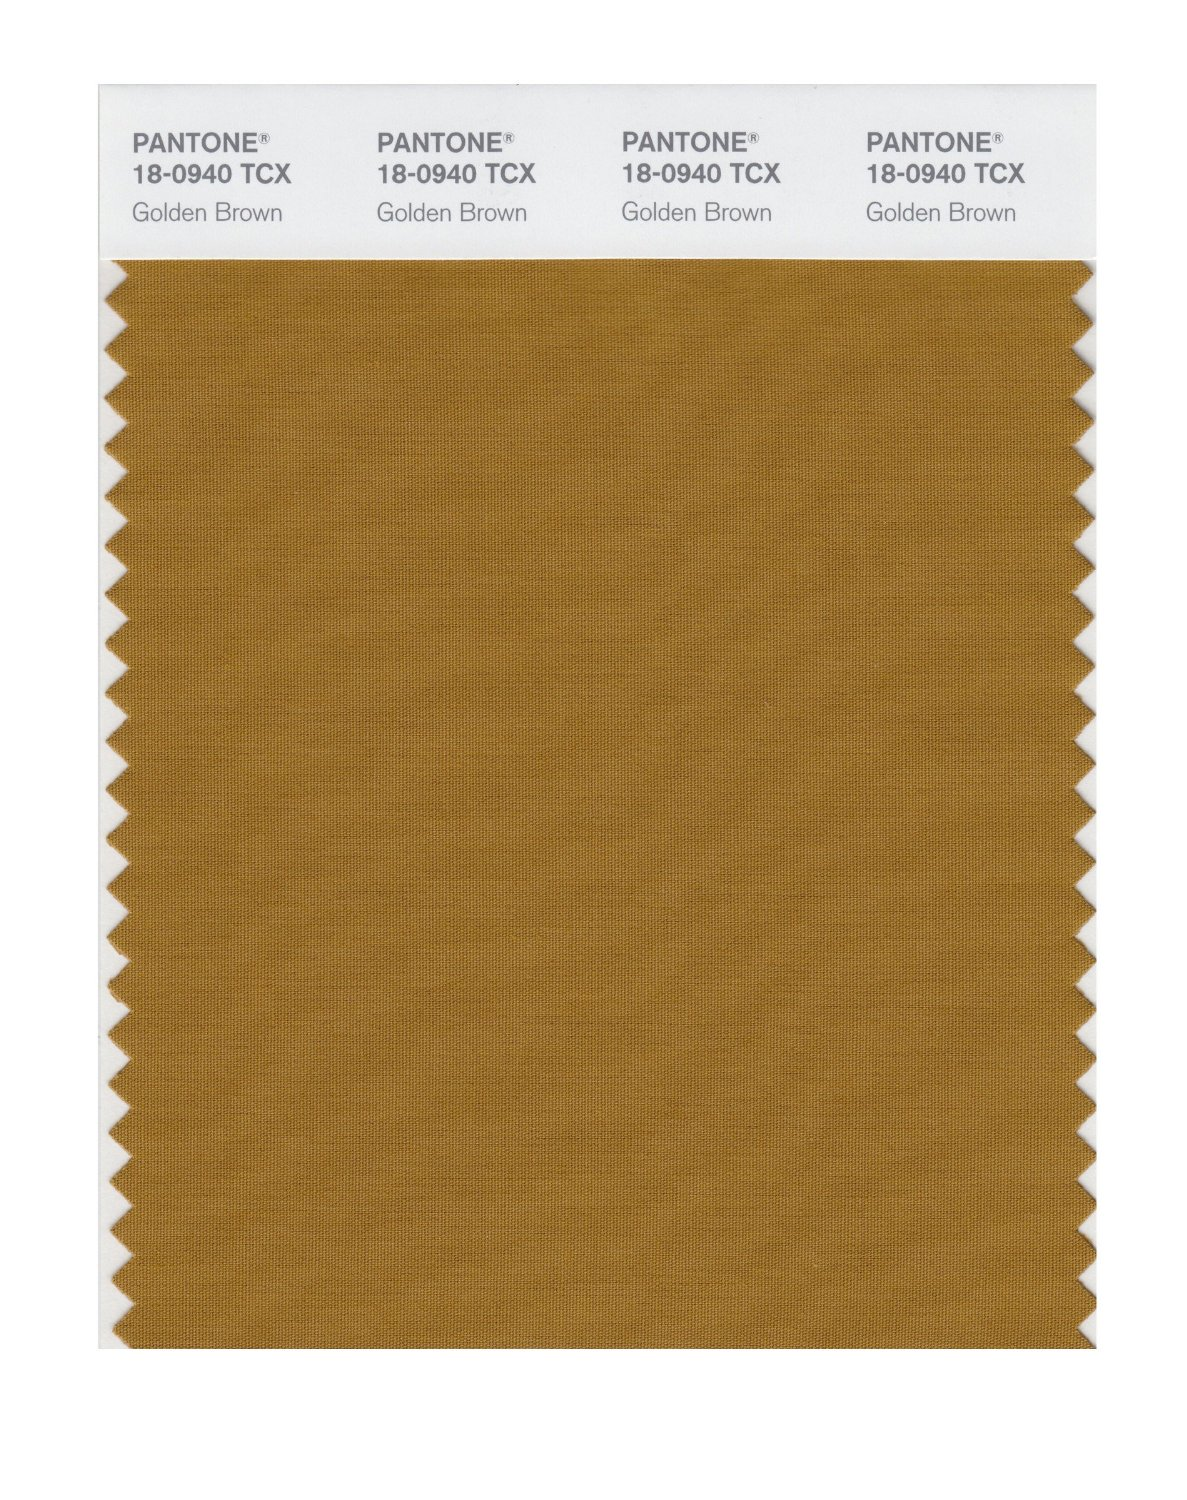 Pantone Smart Swatch 18-0940 Golden Brown